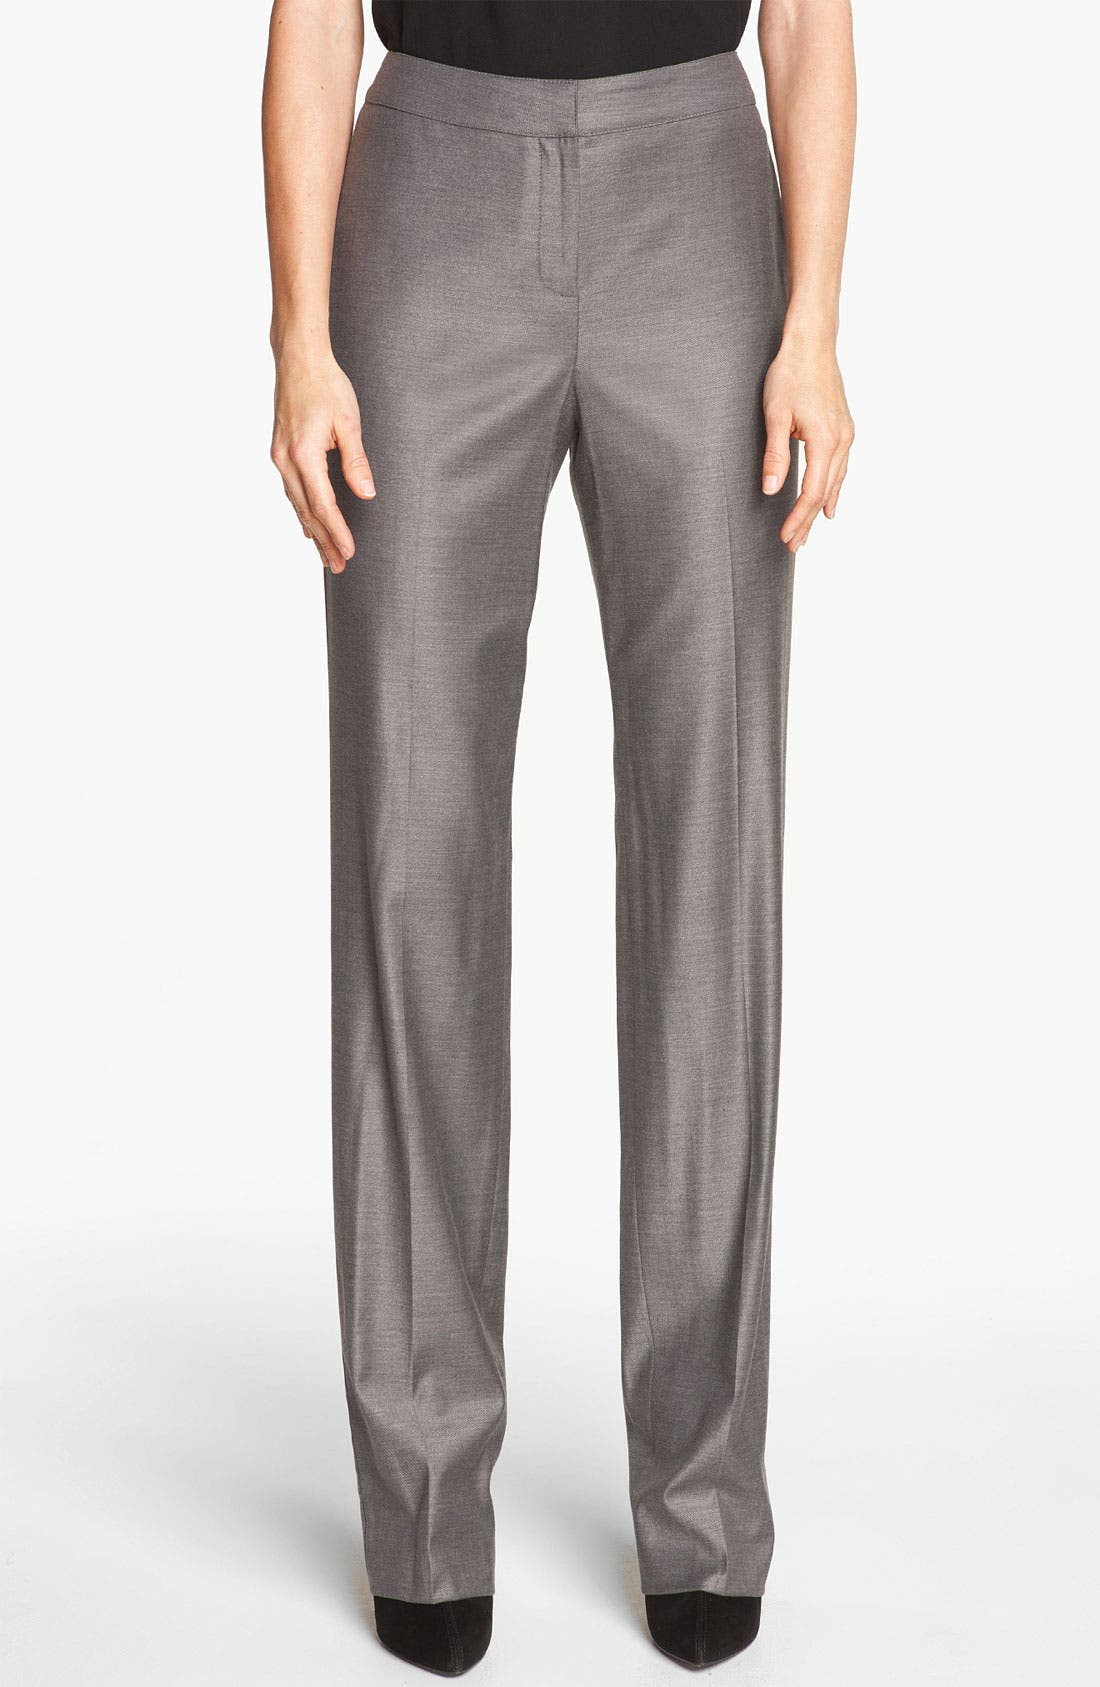 Alternate Image 1 Selected - St. John Collection 'Diana' Shimmer Twill Pants